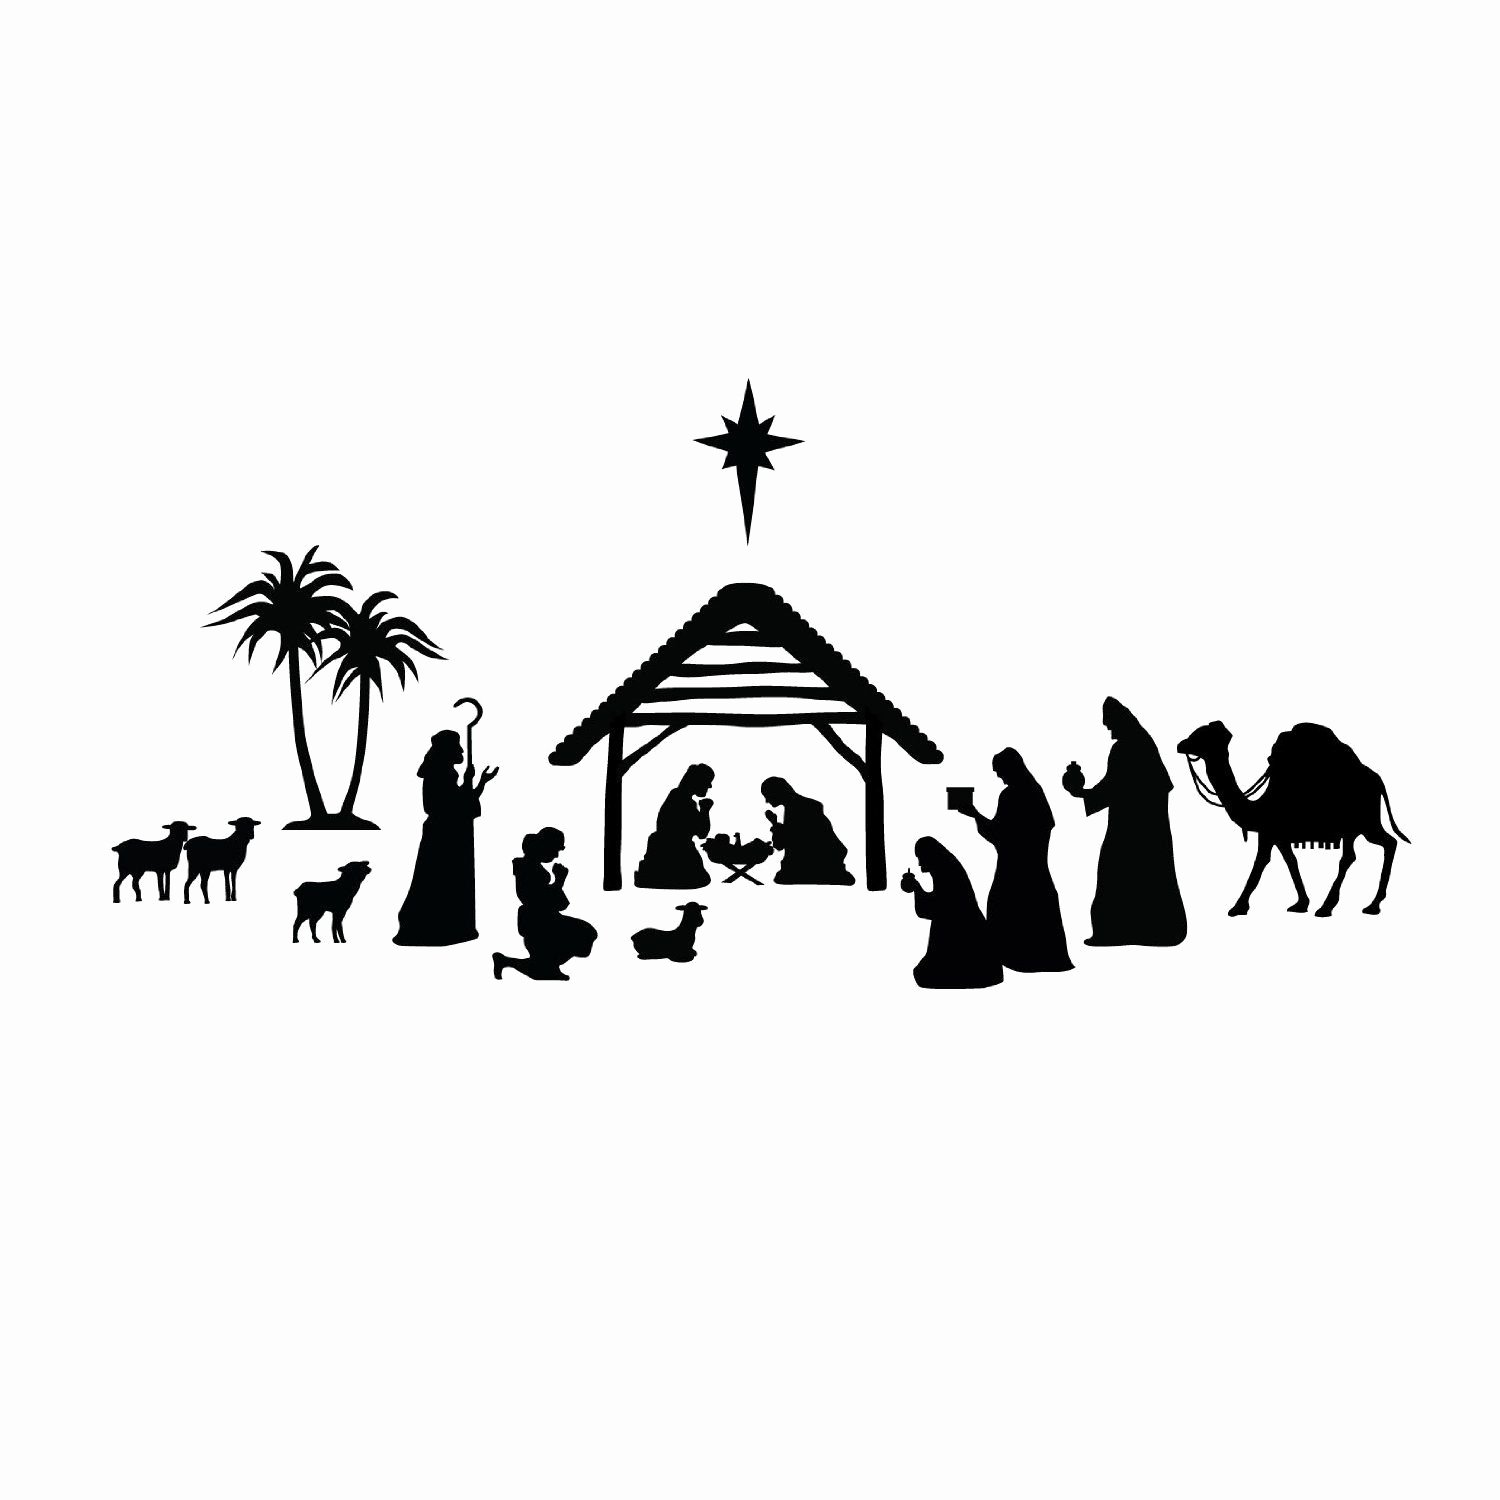 Nativity Silhouette Printable Luxury Related Image Neat Diy Christmas Gifts